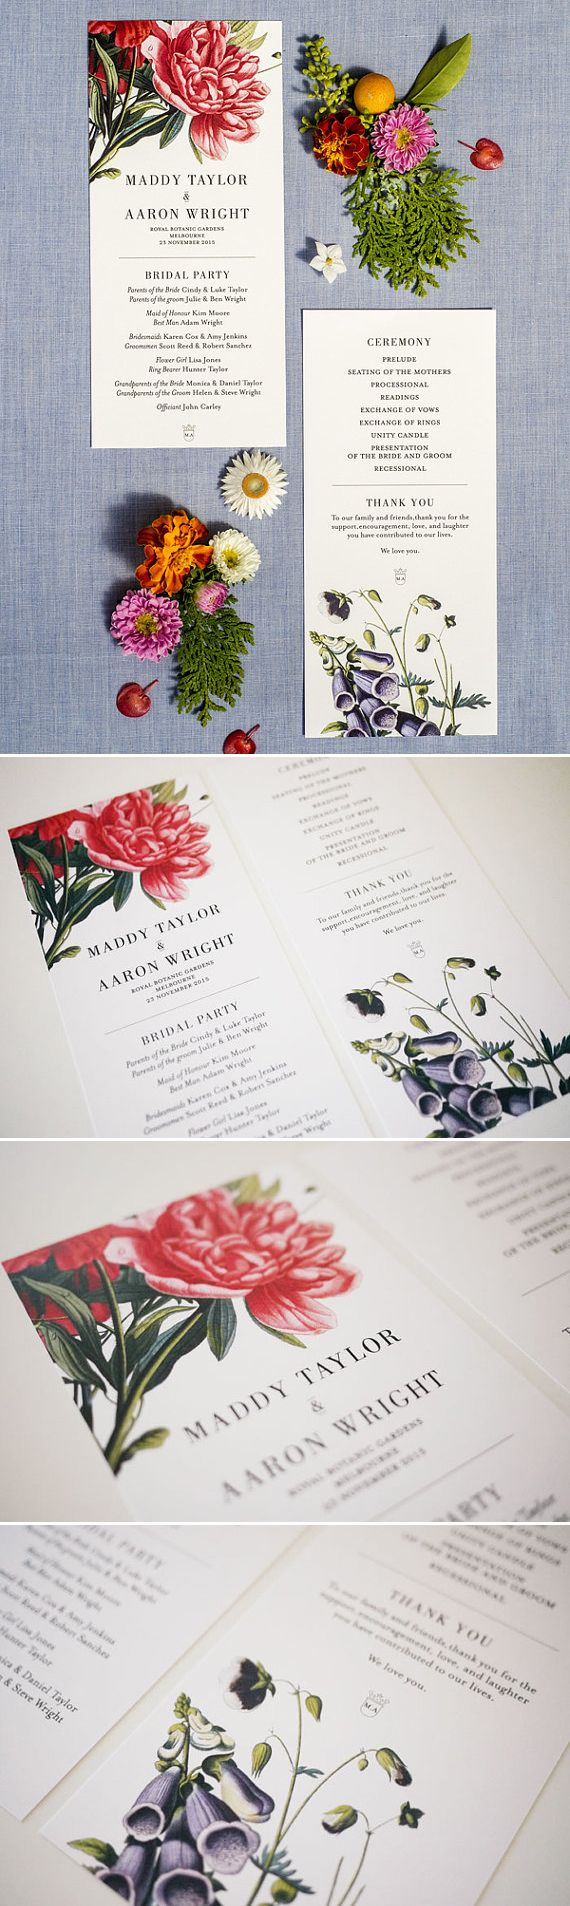 wildflower wedding invitation templates%0A Botanical Floral Order of Service Wedding Program Printable    EggsDesign   design  graphicdesign  wedding  Invitation